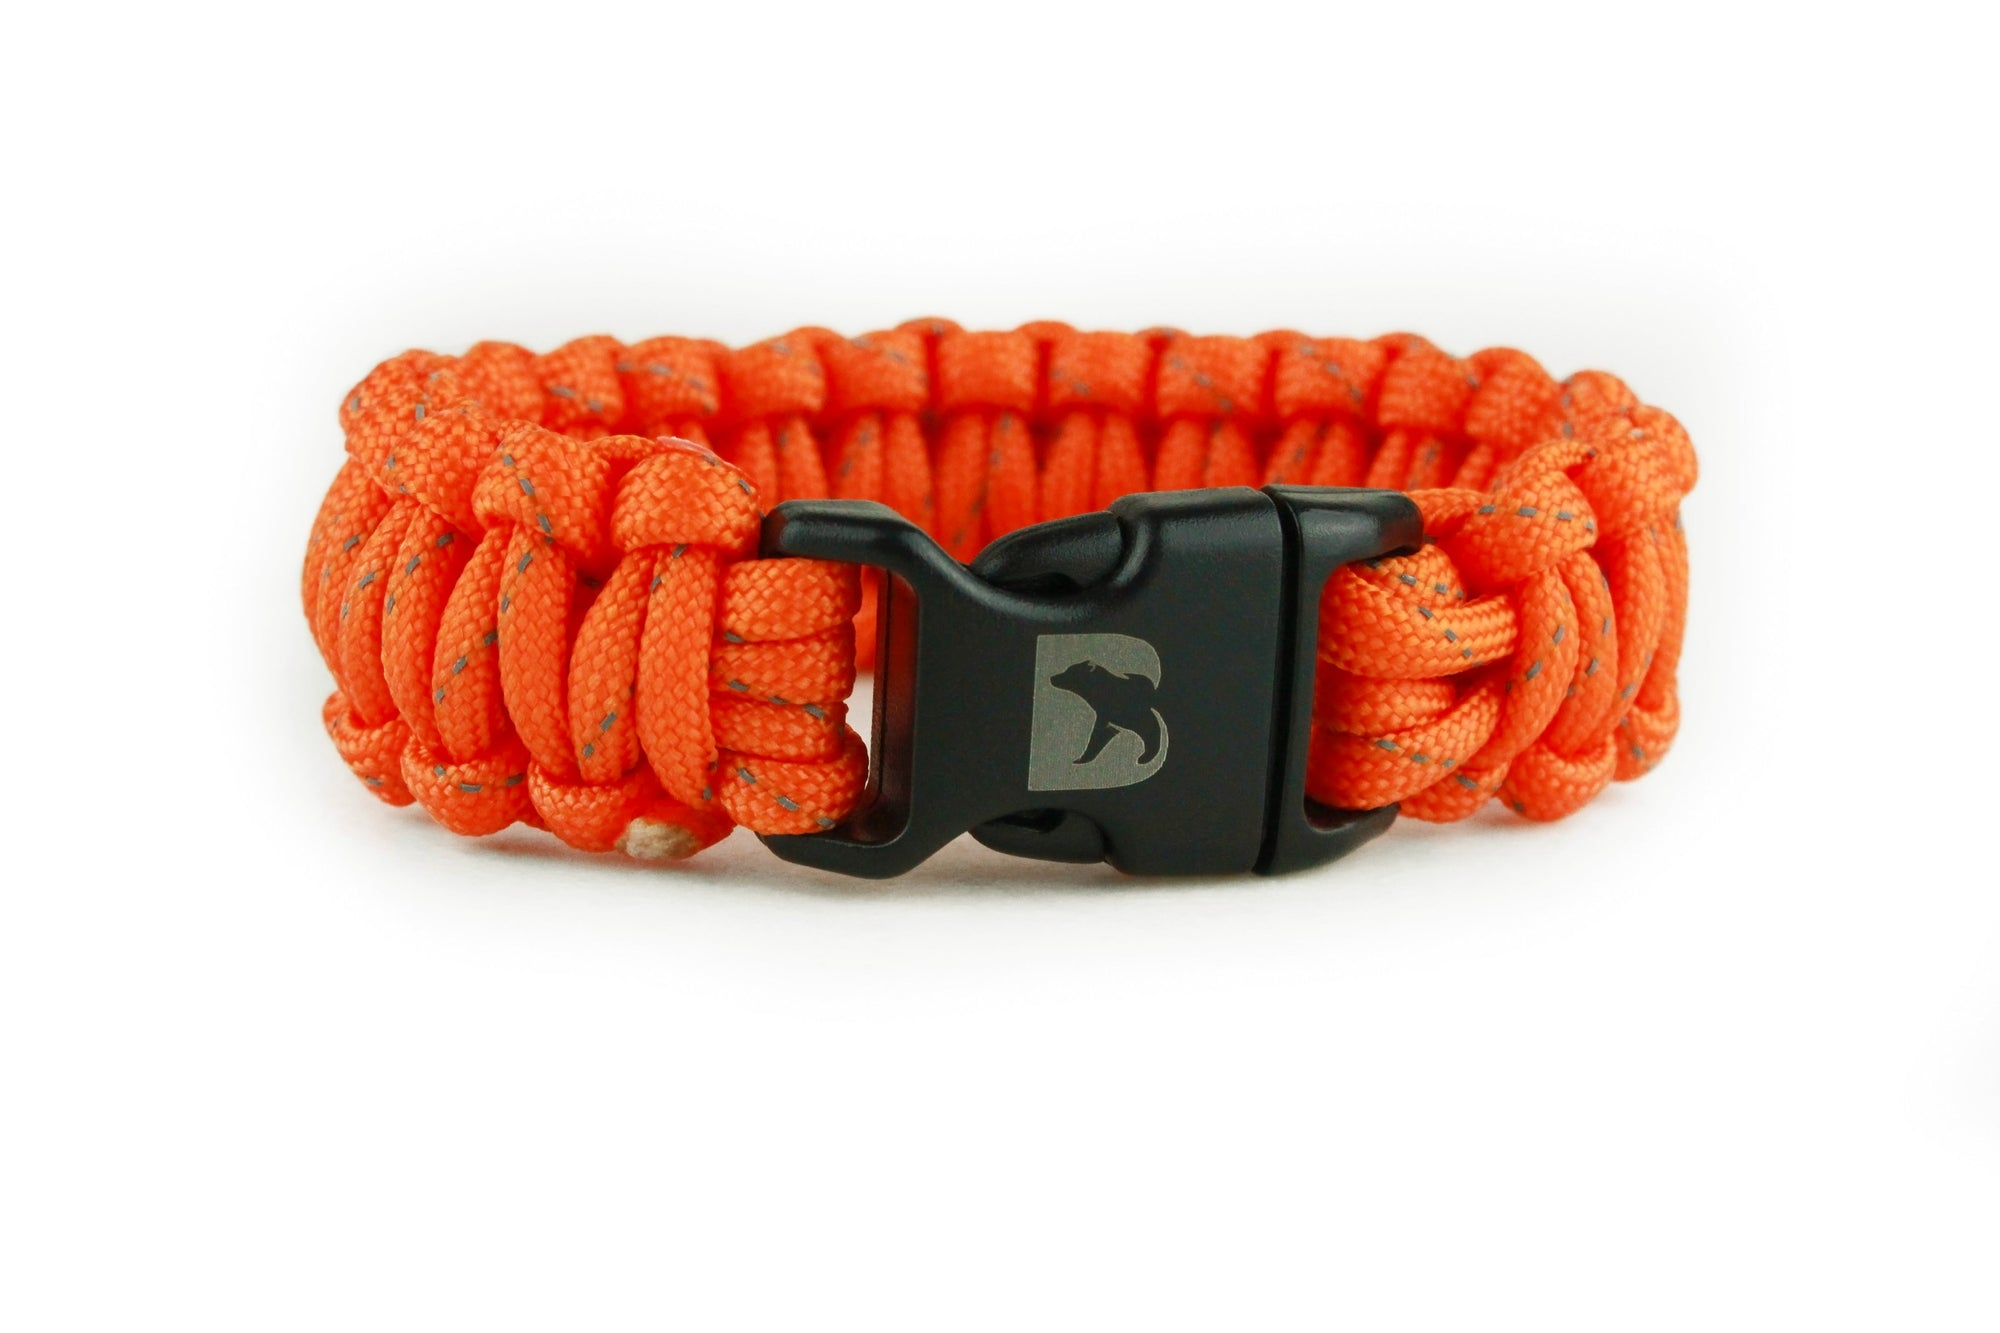 Reflective Orange Paracord Bracelet - Bearbottom Clothing